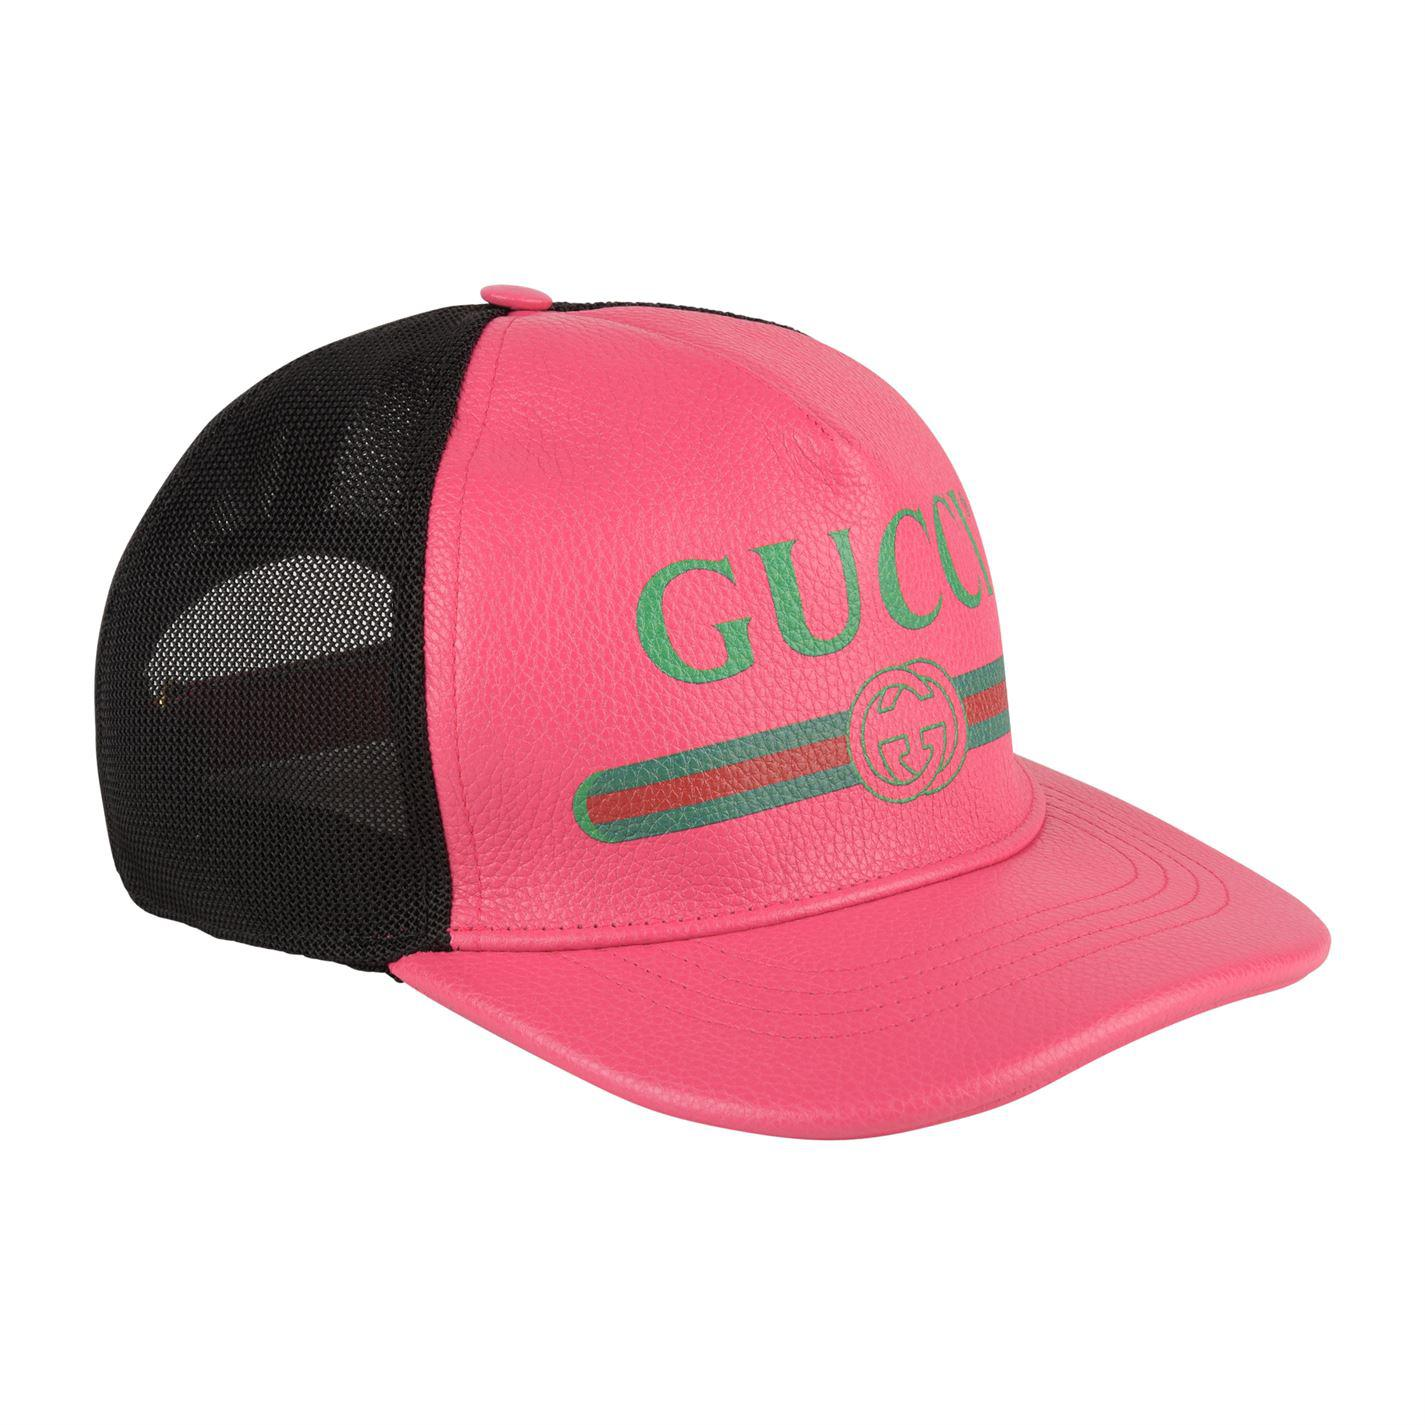 36906db1ffe Gucci Logo Leather Cap in Pink - Save 44% - Lyst